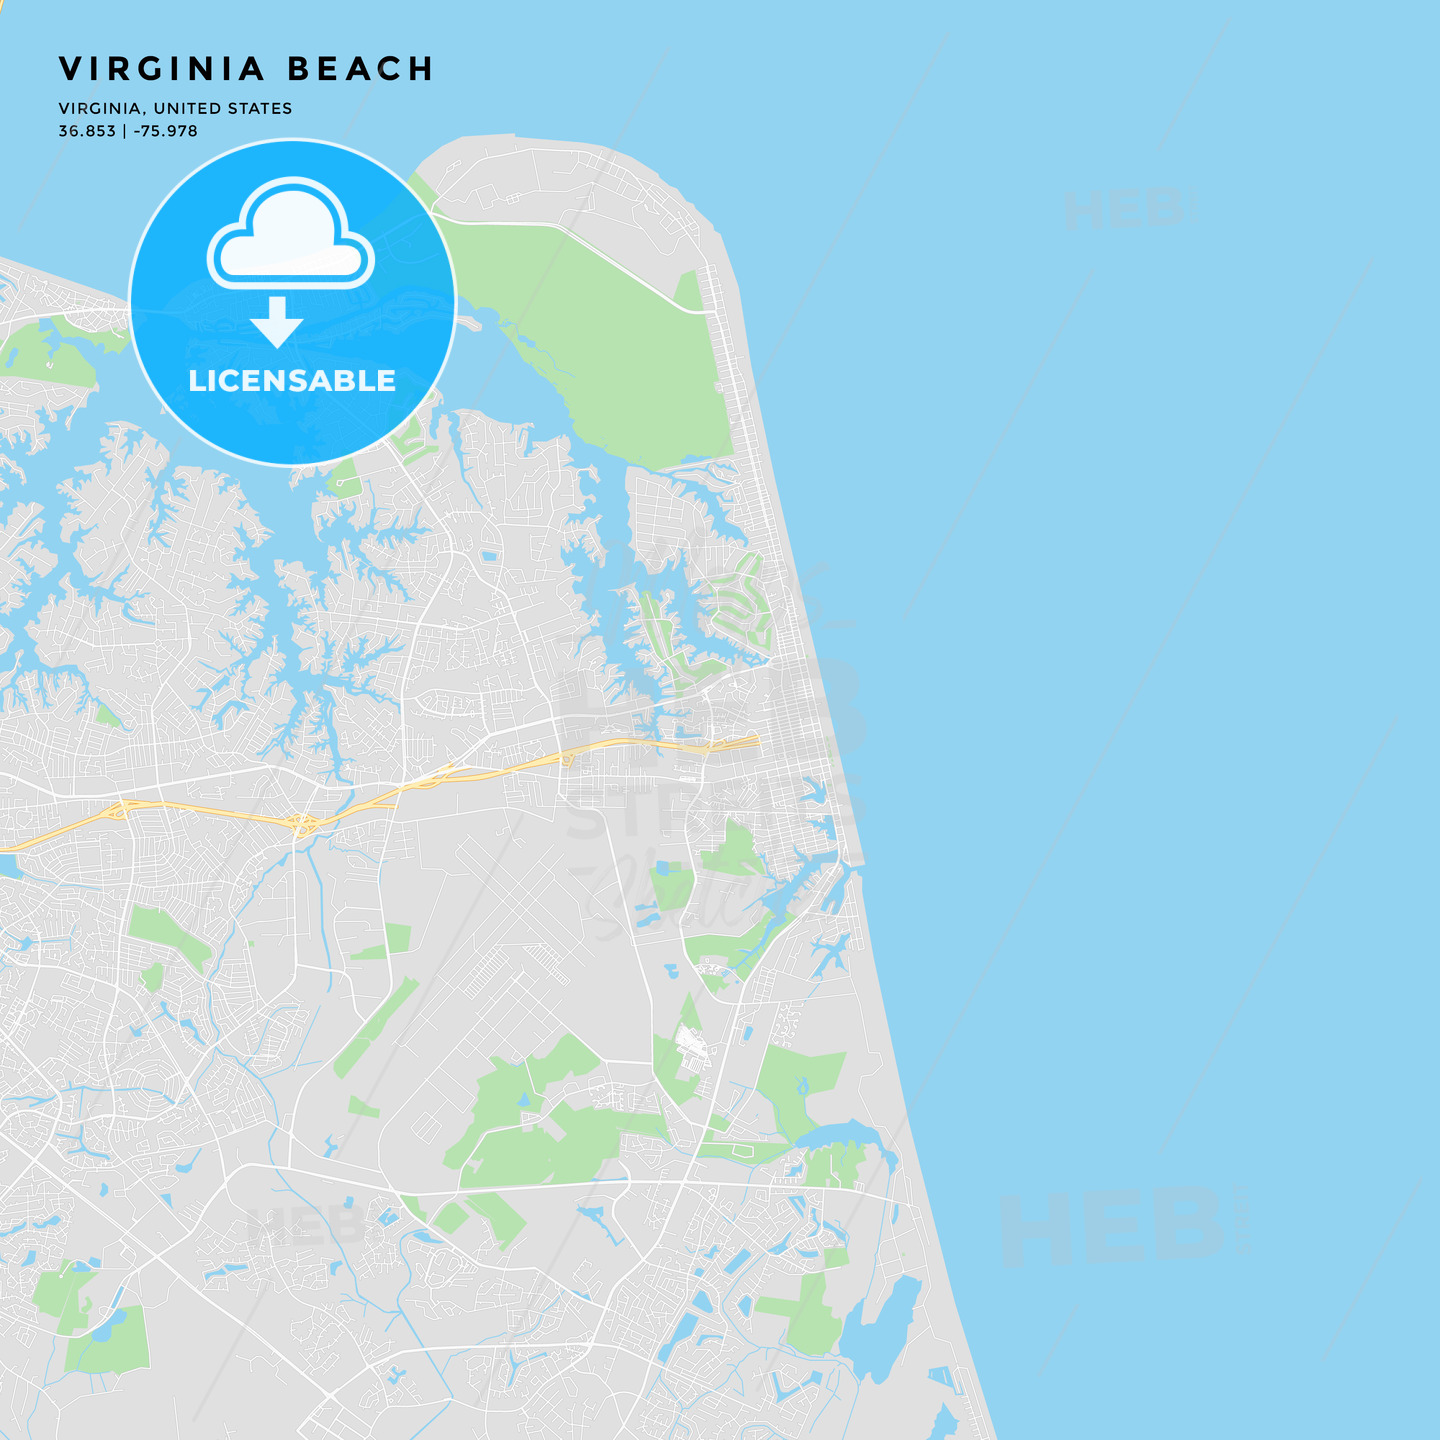 image about Printable Maps of Virginia identified as Printable road map of Virginia Seashore, Virginia